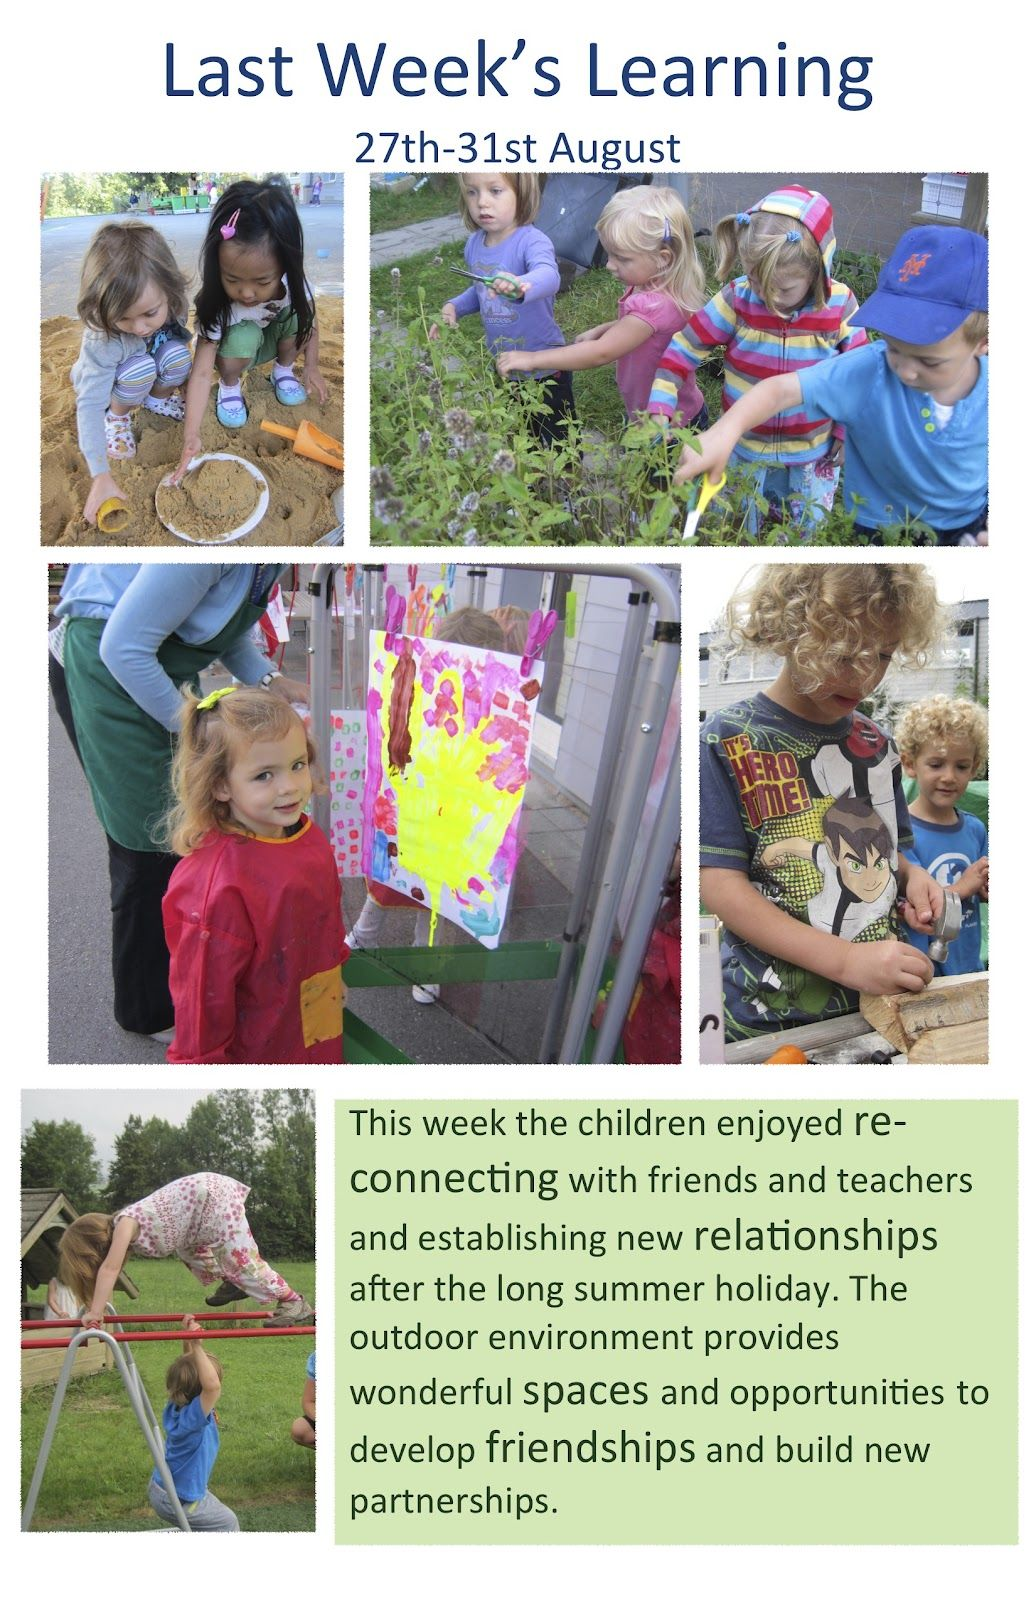 Example of outdoor experience for children